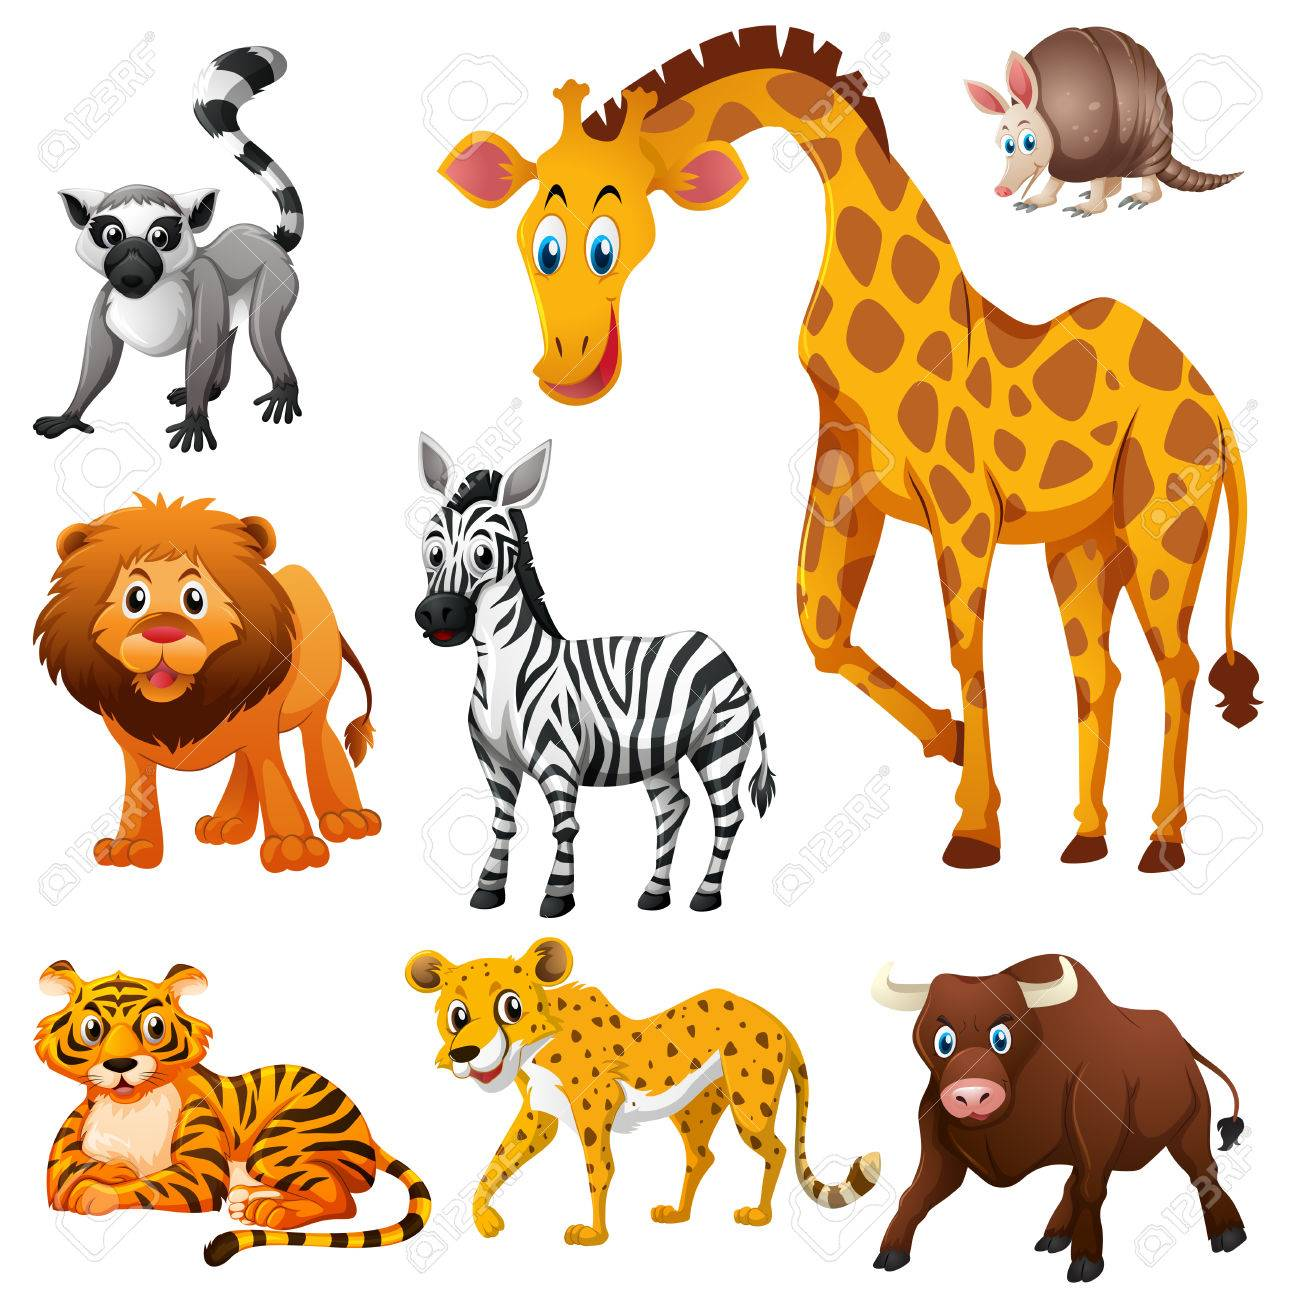 Different Kinds Of Wild Animals Illustration Royalty Free Cliparts ...